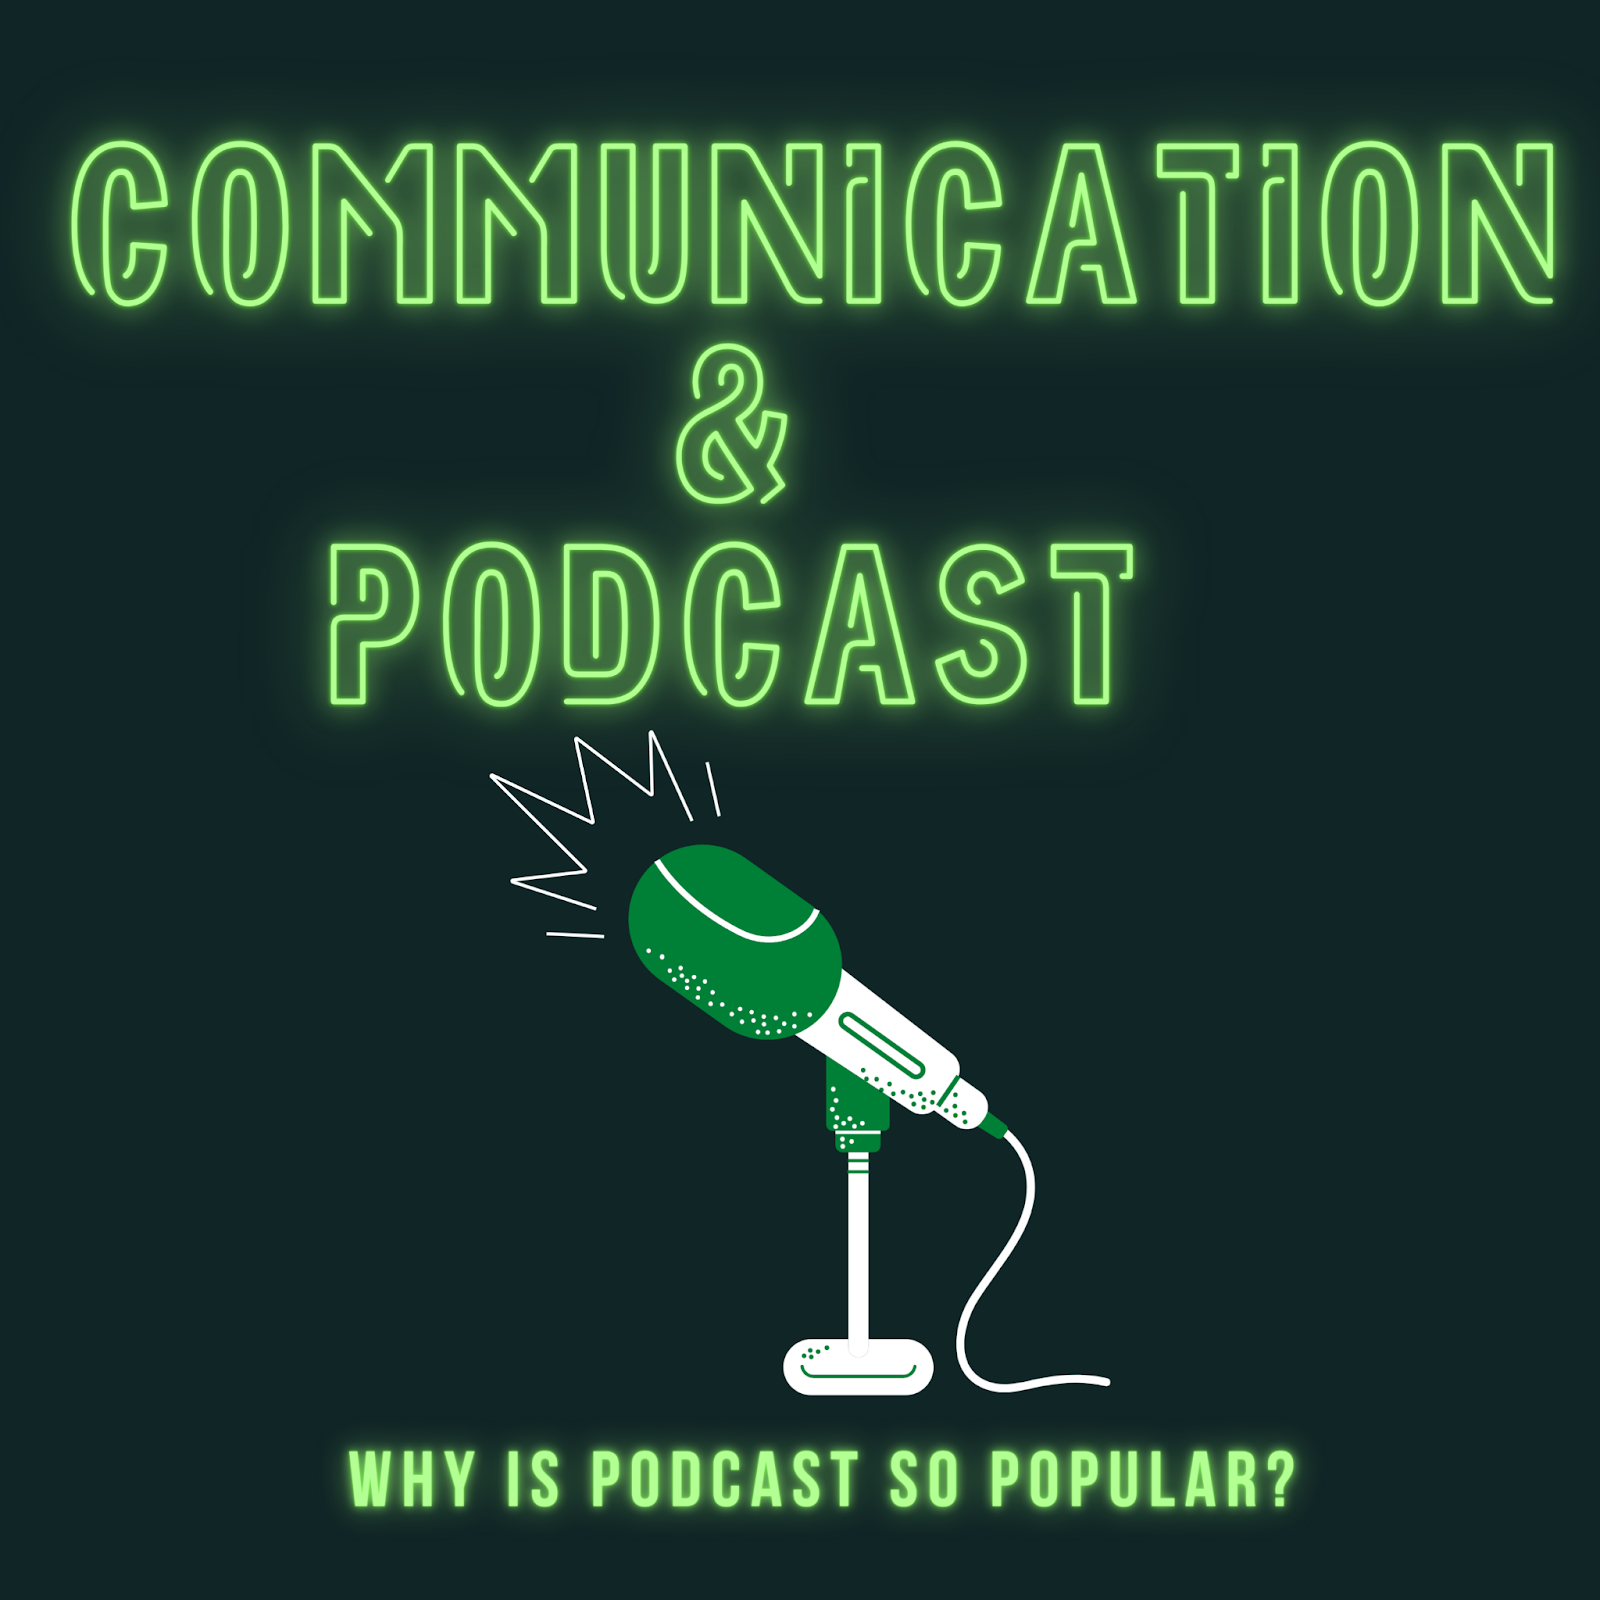 Building your Brand in 2021 - Communication & Podcast